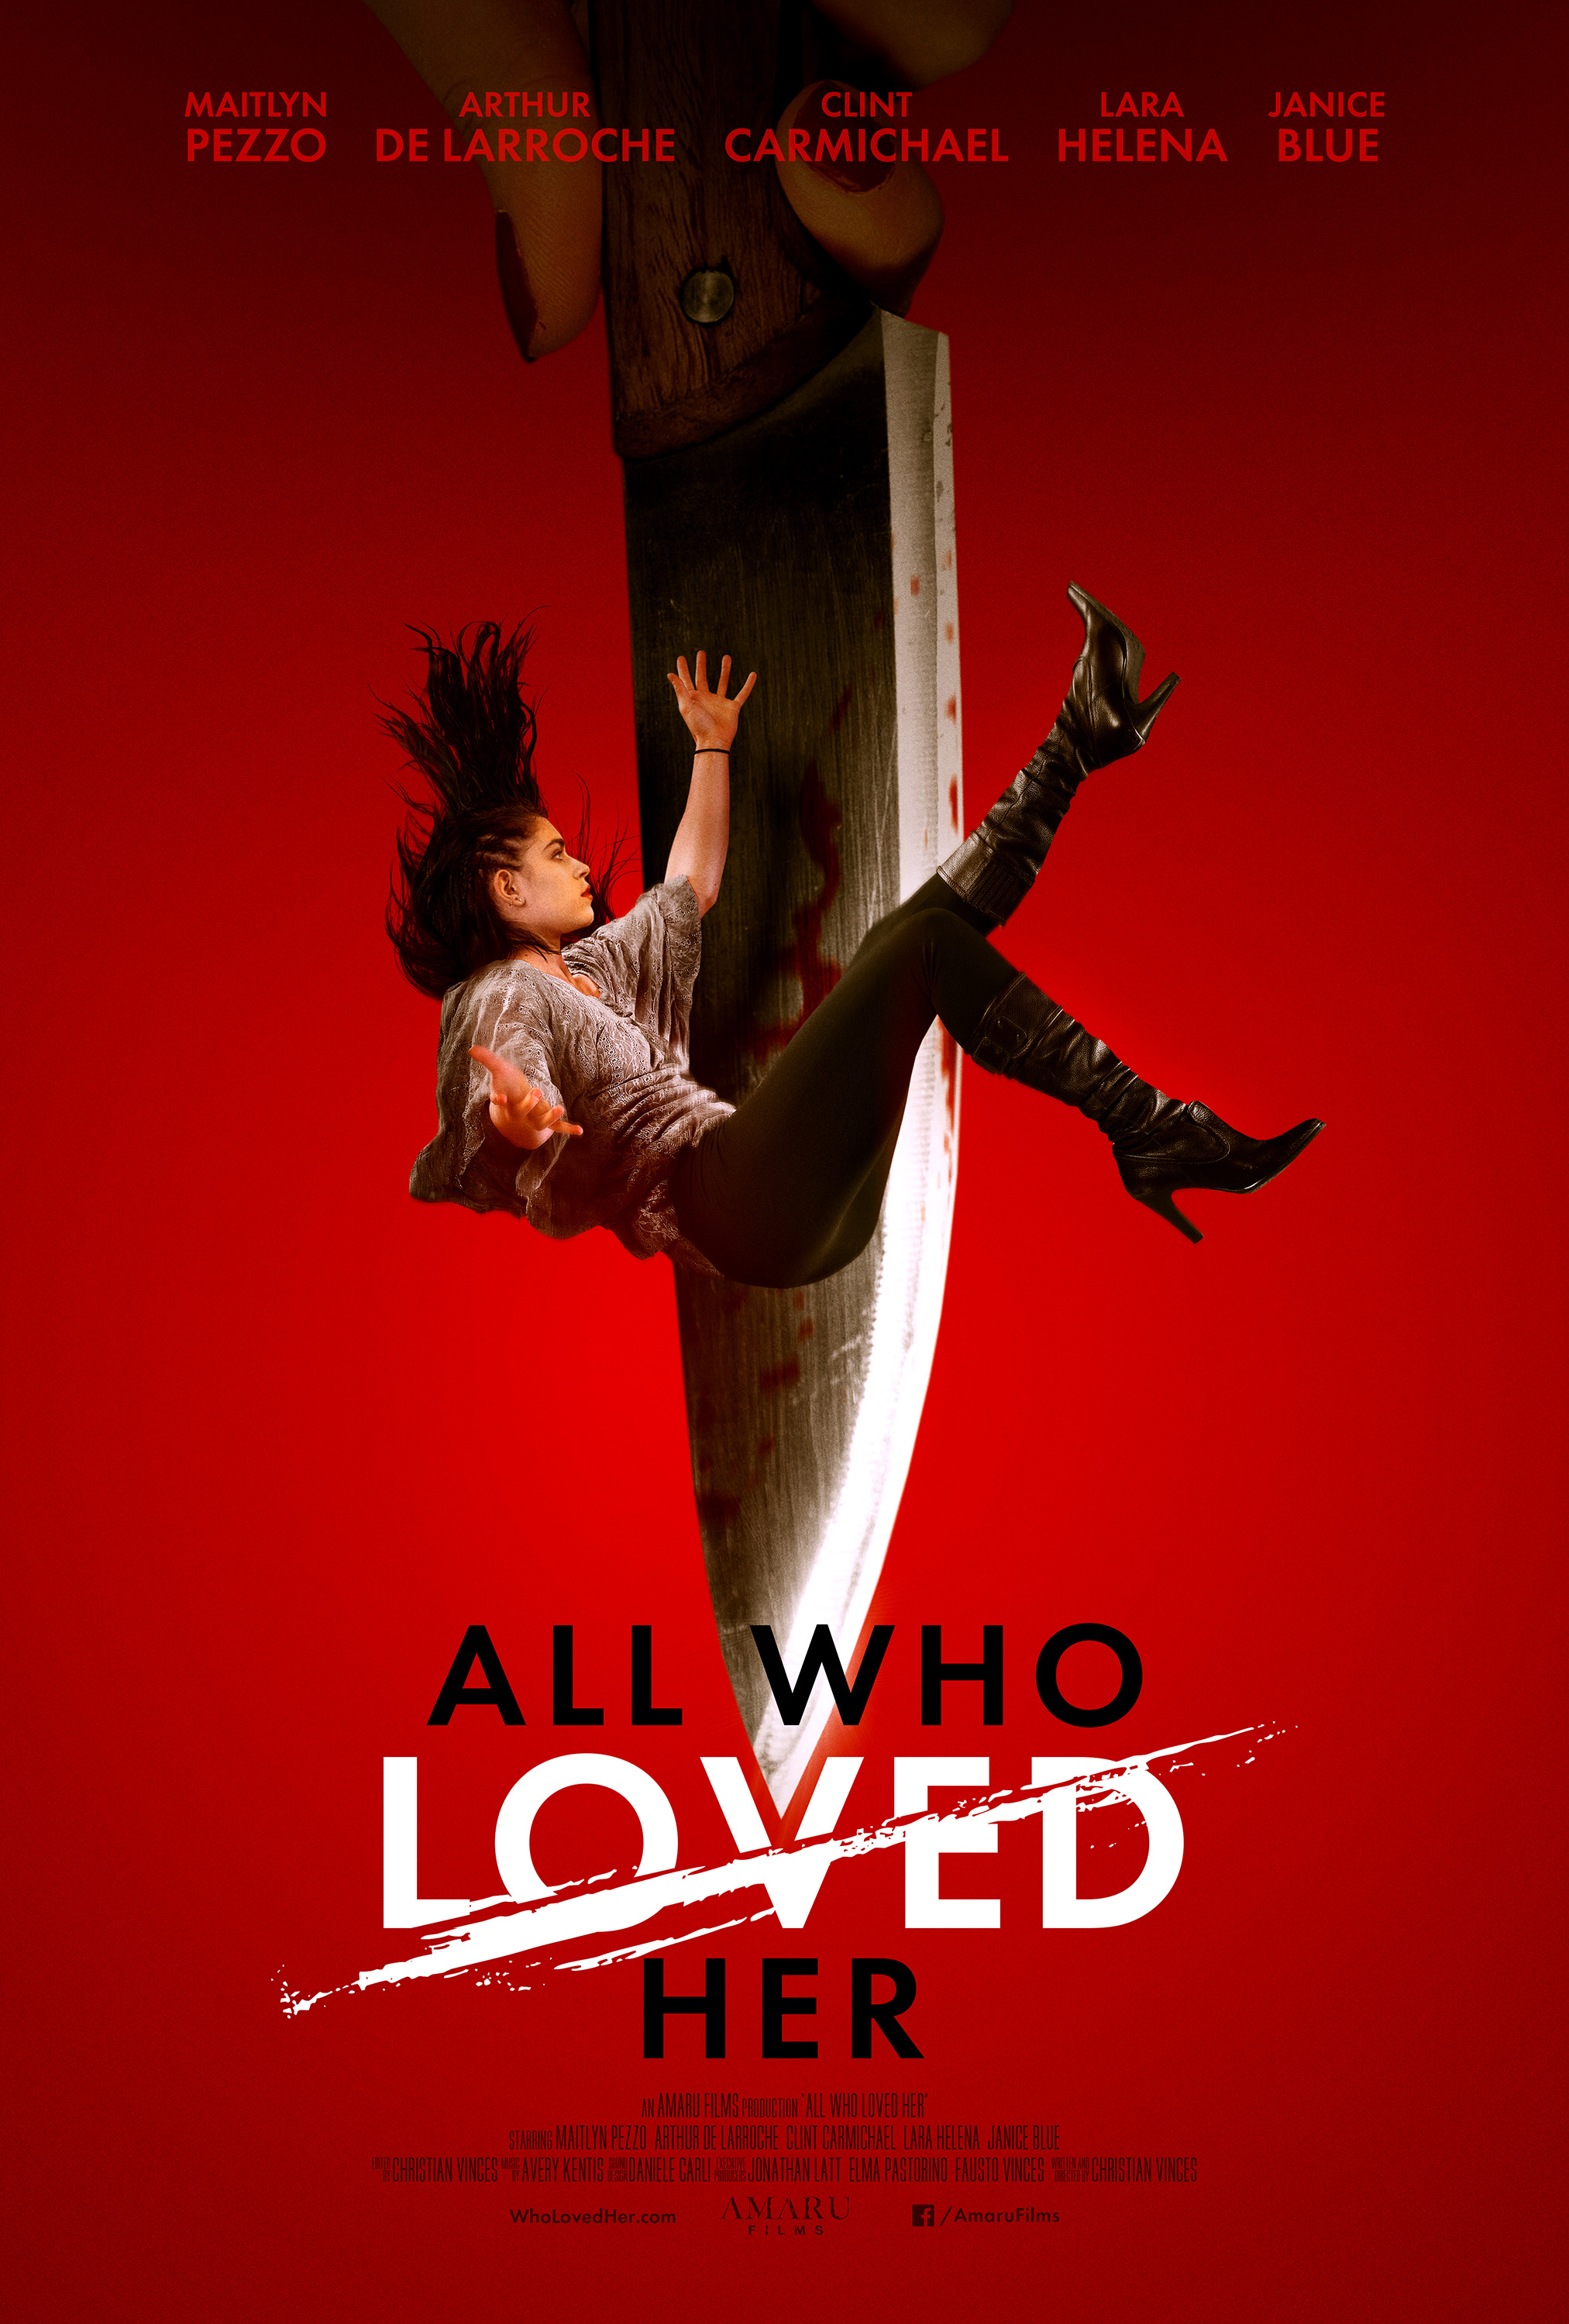 All Who Loved Her (2021) Telugu Dubbed (Voice Over) & English [Dual Audio] WebRip 720p [1XBET]